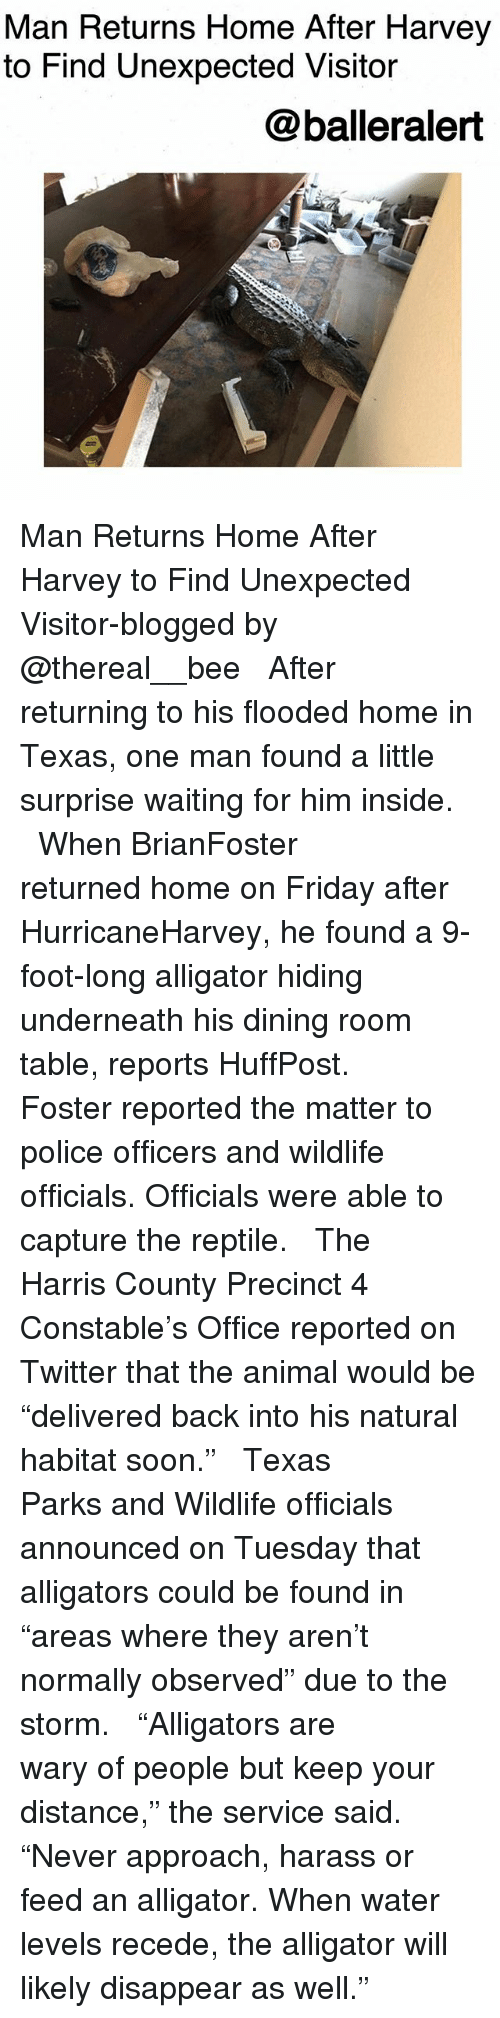 "Underneathe: Man Returns Home After Harvey  to Find Unexpected Visitor  @balleralert Man Returns Home After Harvey to Find Unexpected Visitor-blogged by @thereal__bee ⠀⠀⠀⠀⠀⠀⠀⠀⠀ ⠀⠀ After returning to his flooded home in Texas, one man found a little surprise waiting for him inside. ⠀⠀⠀⠀⠀⠀⠀⠀⠀ ⠀⠀ When BrianFoster returned home on Friday after HurricaneHarvey, he found a 9-foot-long alligator hiding underneath his dining room table, reports HuffPost. ⠀⠀⠀⠀⠀⠀⠀⠀⠀ ⠀⠀ Foster reported the matter to police officers and wildlife officials. Officials were able to capture the reptile. ⠀⠀⠀⠀⠀⠀⠀⠀⠀ ⠀⠀ The Harris County Precinct 4 Constable's Office reported on Twitter that the animal would be ""delivered back into his natural habitat soon."" ⠀⠀⠀⠀⠀⠀⠀⠀⠀ ⠀⠀ Texas Parks and Wildlife officials announced on Tuesday that alligators could be found in ""areas where they aren't normally observed"" due to the storm. ⠀⠀⠀⠀⠀⠀⠀⠀⠀ ⠀⠀ ""Alligators are wary of people but keep your distance,"" the service said. ""Never approach, harass or feed an alligator. When water levels recede, the alligator will likely disappear as well."""